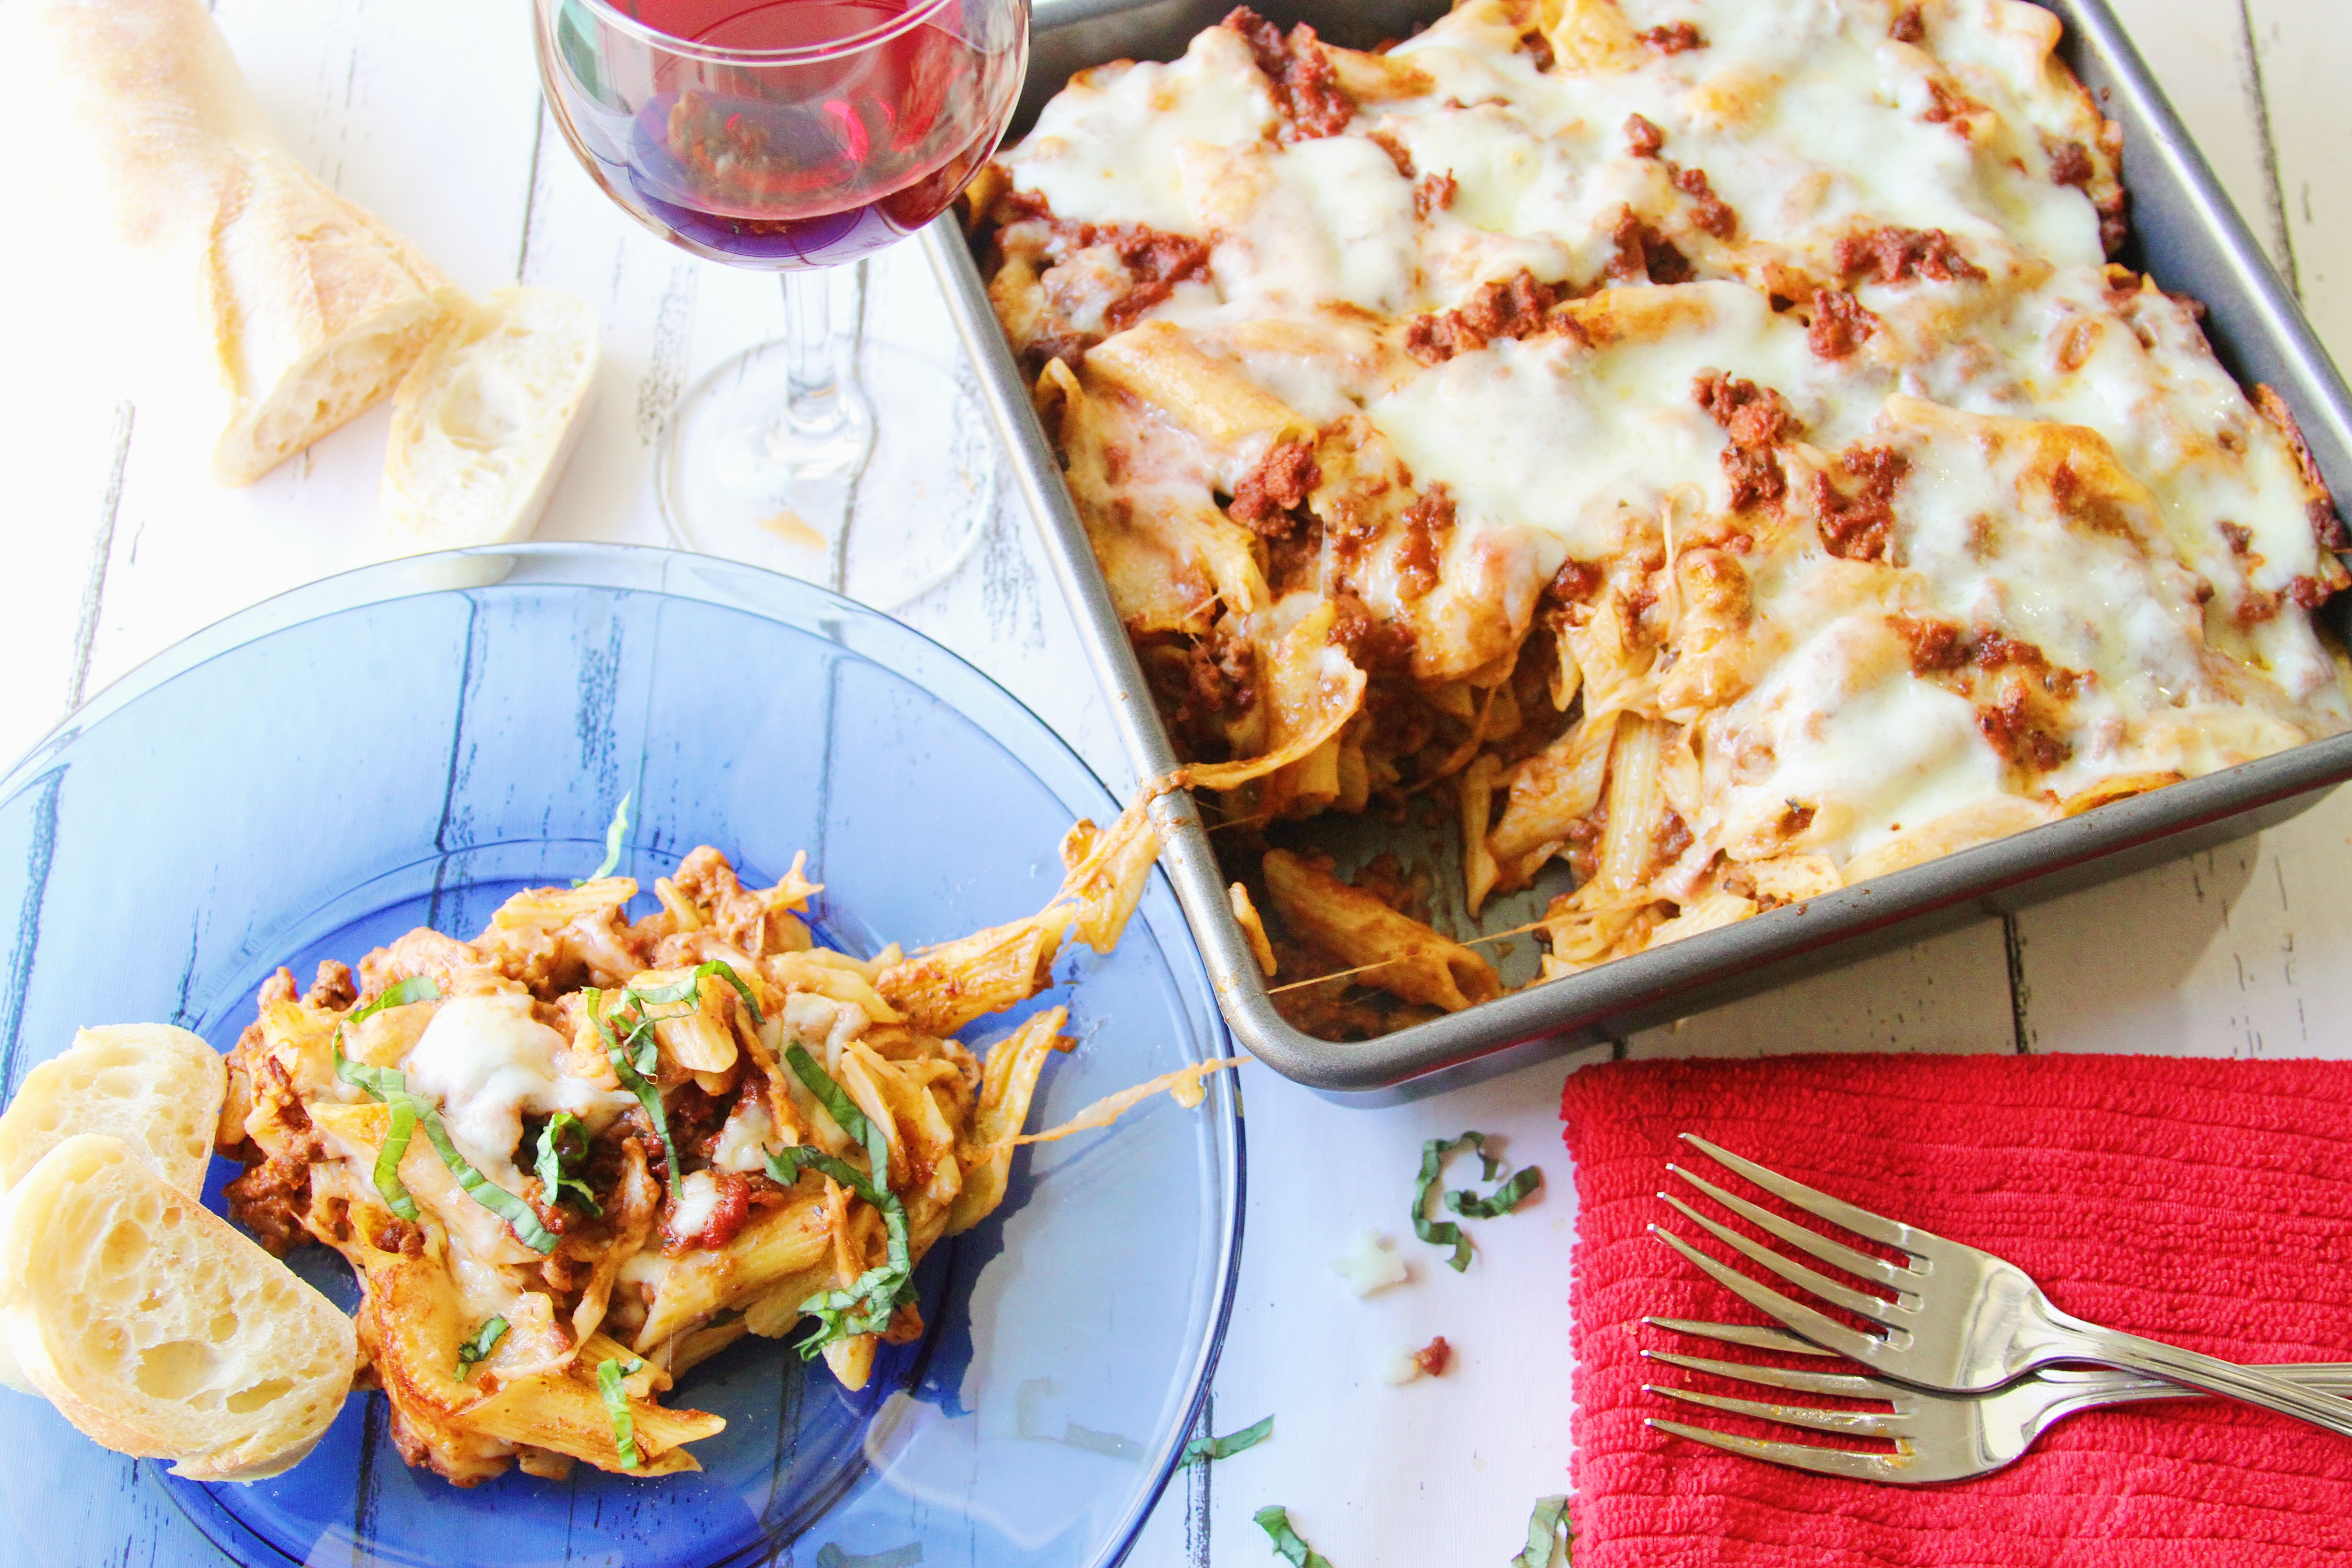 Margaritas On The Rocks Baked Penne W Red Wine Bolognese Sauce